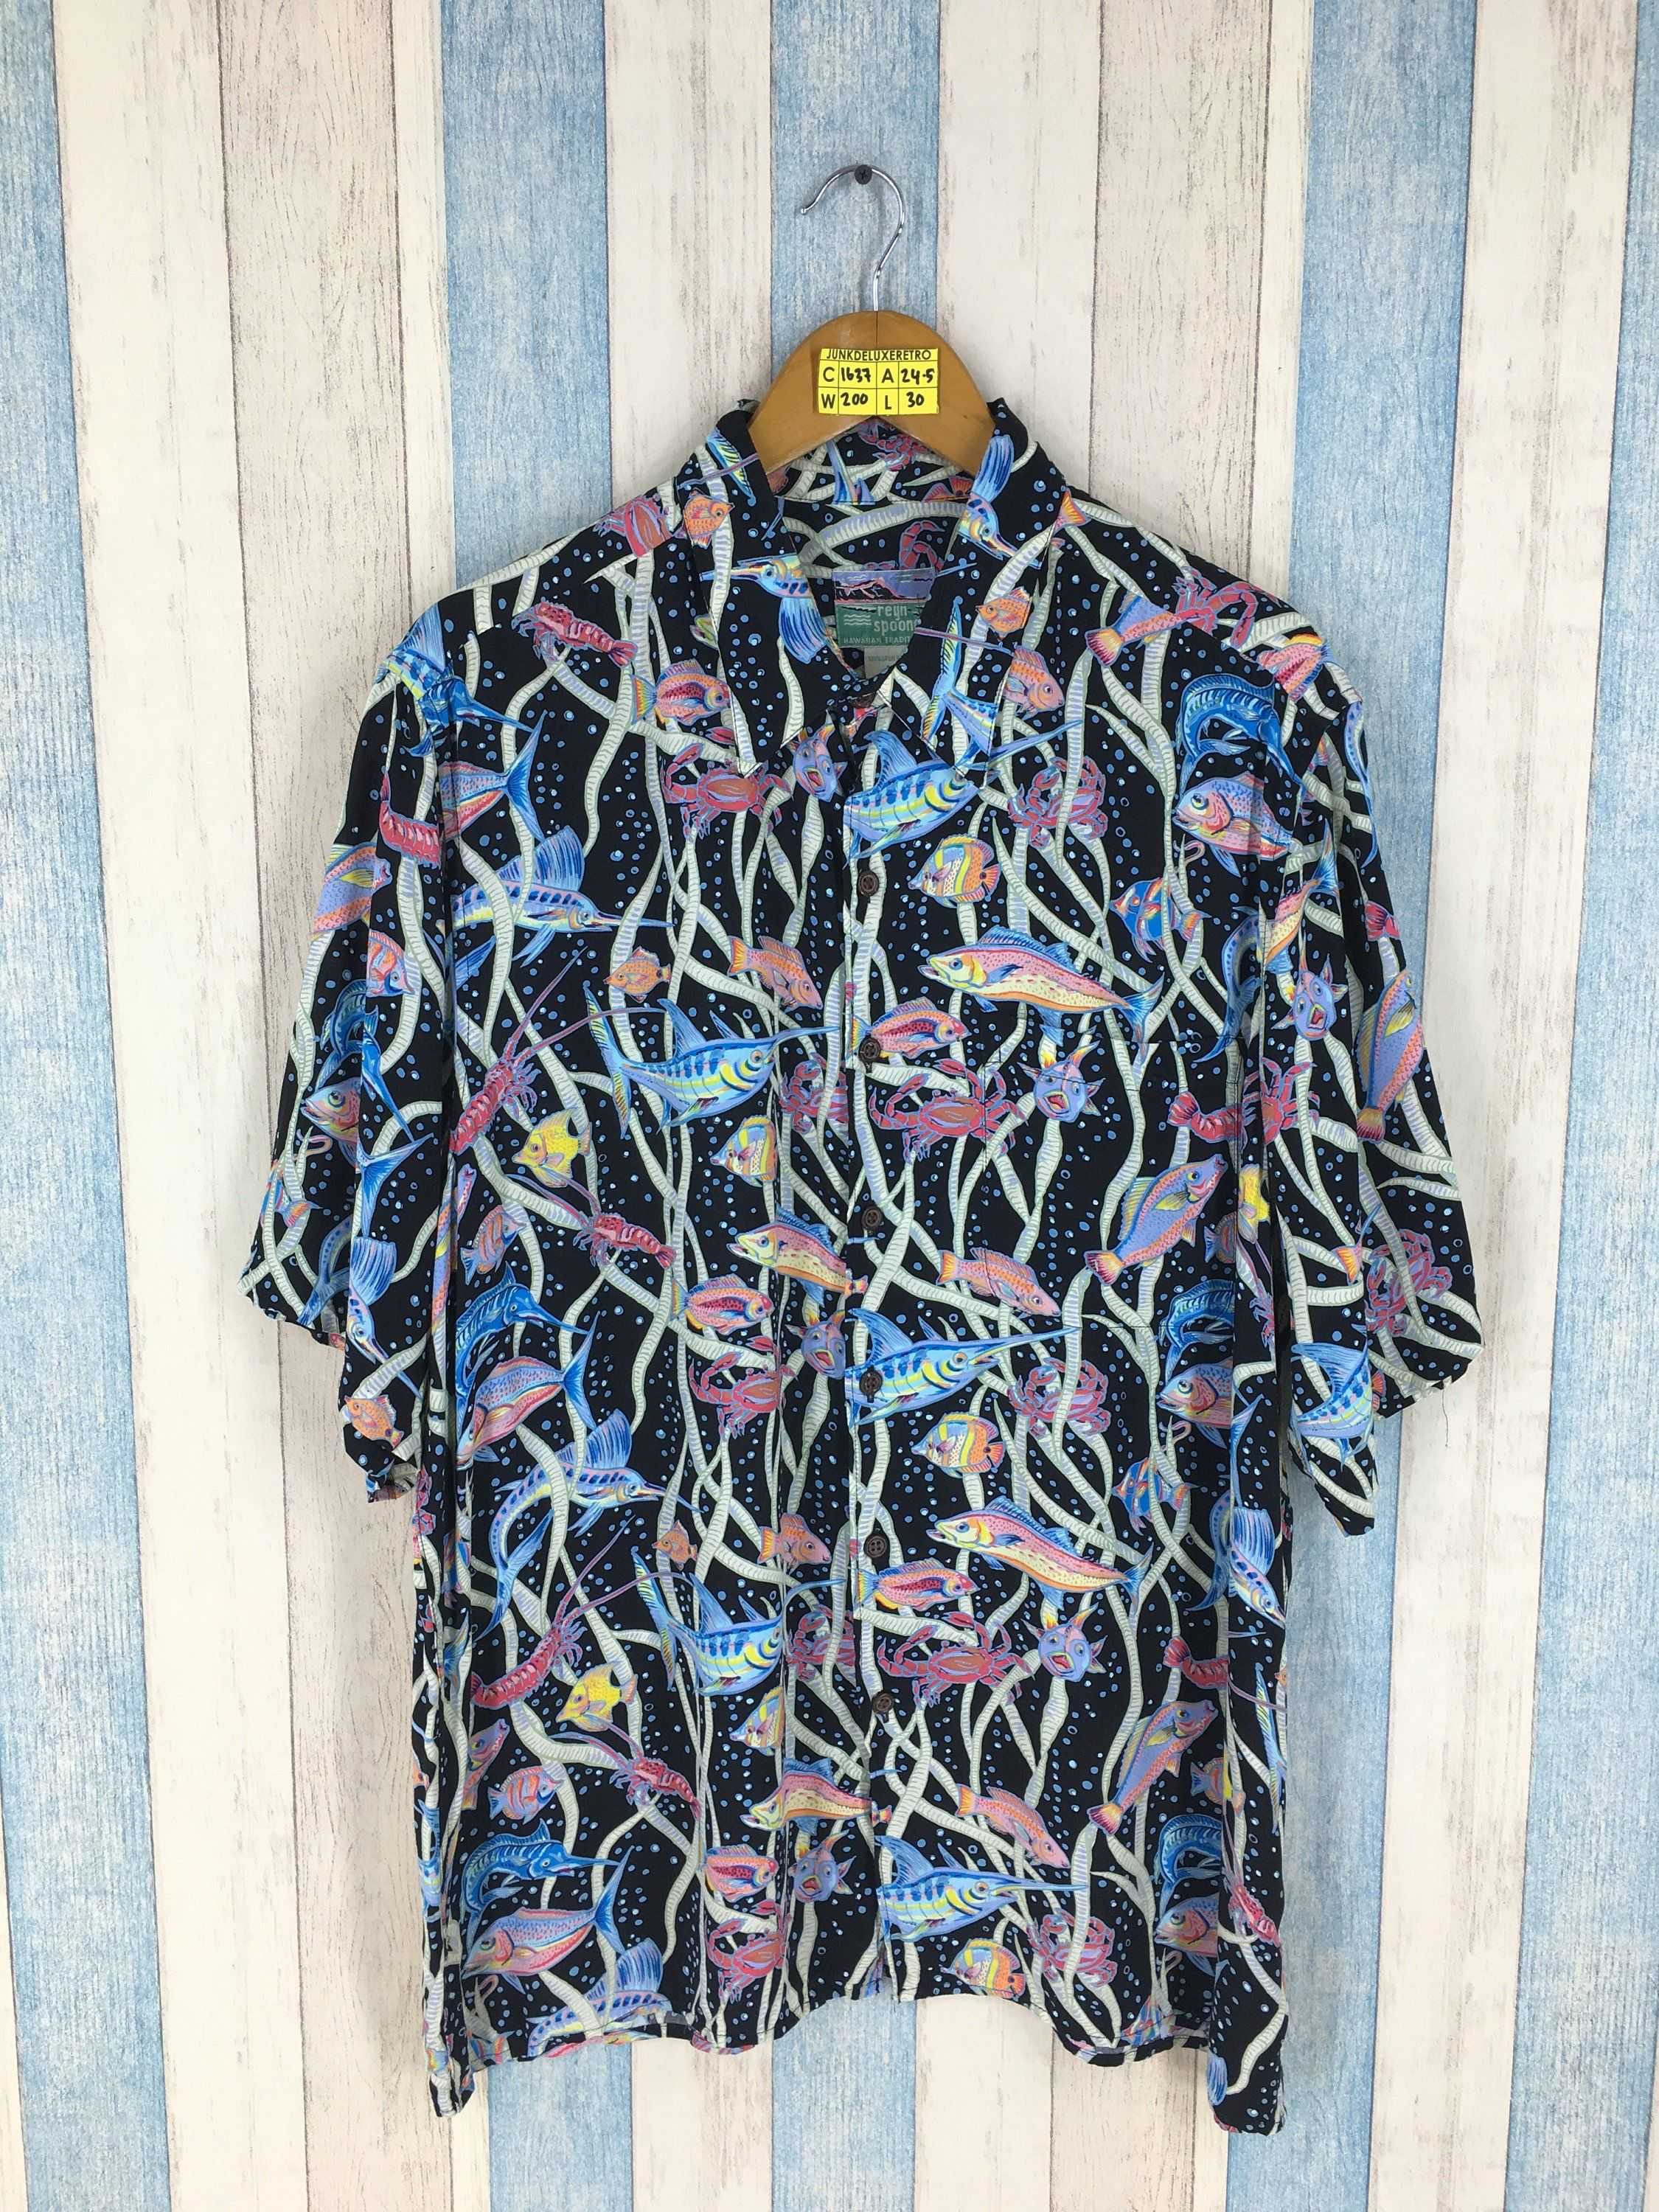 6c6eb9e13 HAWAIIAN Reyn Spooner Shirt Large 1980's Vintage Multicolor Animal Sea Fish  Pop Art Rockabilly Surf Aloha Beach Button Down Rayon Size L by  JunkDeluxeRetro ...